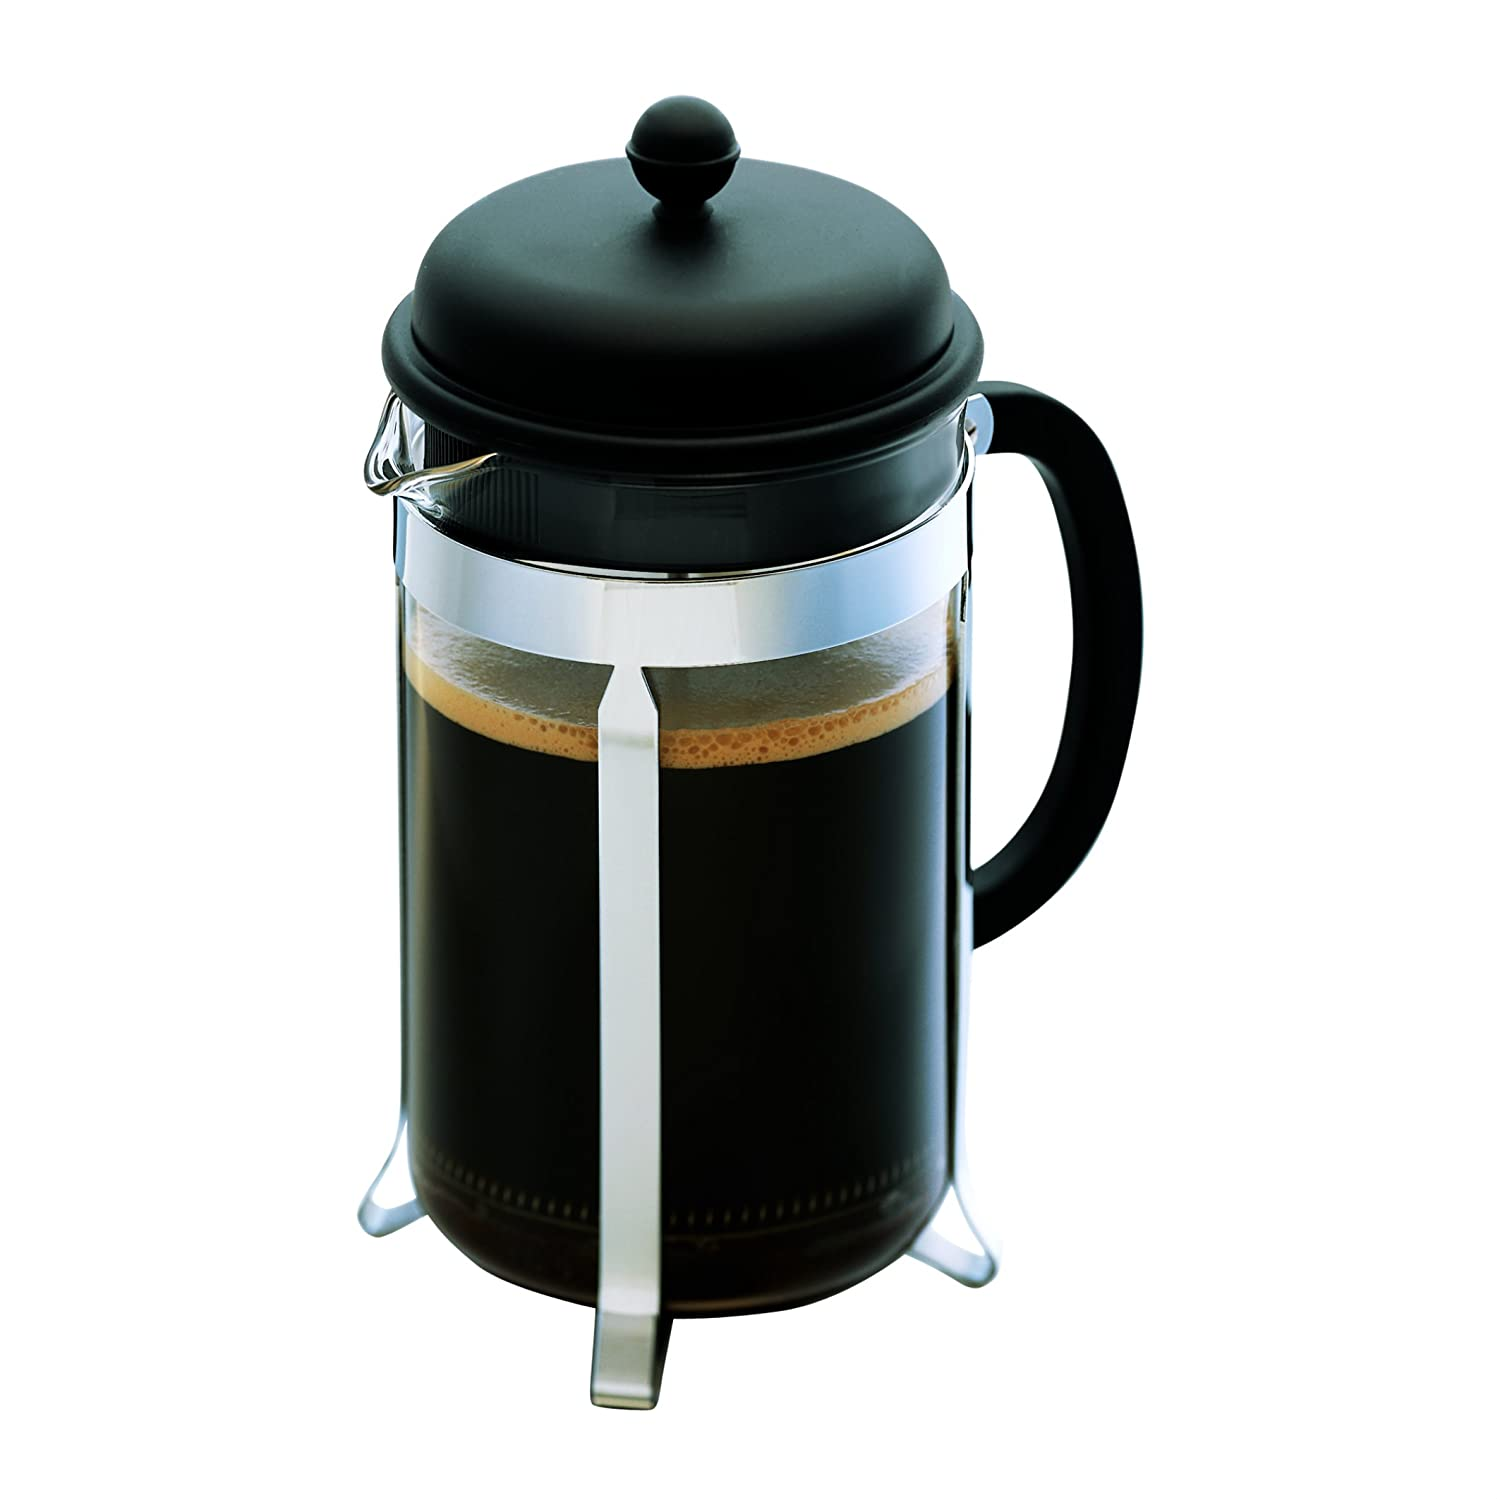 Bed bath beyond french press - Amazon Com Bodum Caffettiera French Press Coffee Maker Black Plastic Lid And Stainless Steel Frame 8 Cup 34 Ounce Kitchen Dining